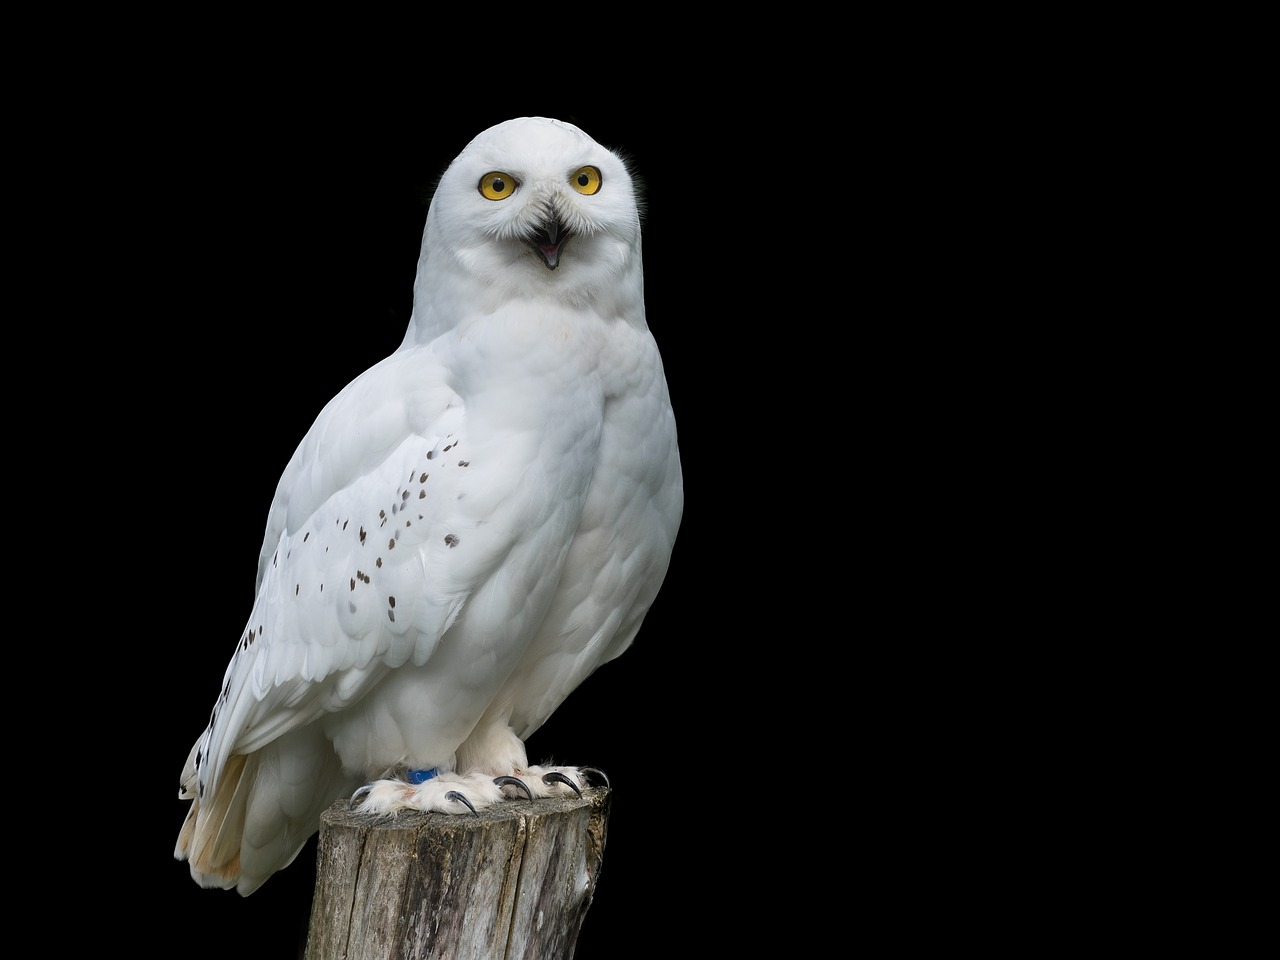 White owl standing on a perch.